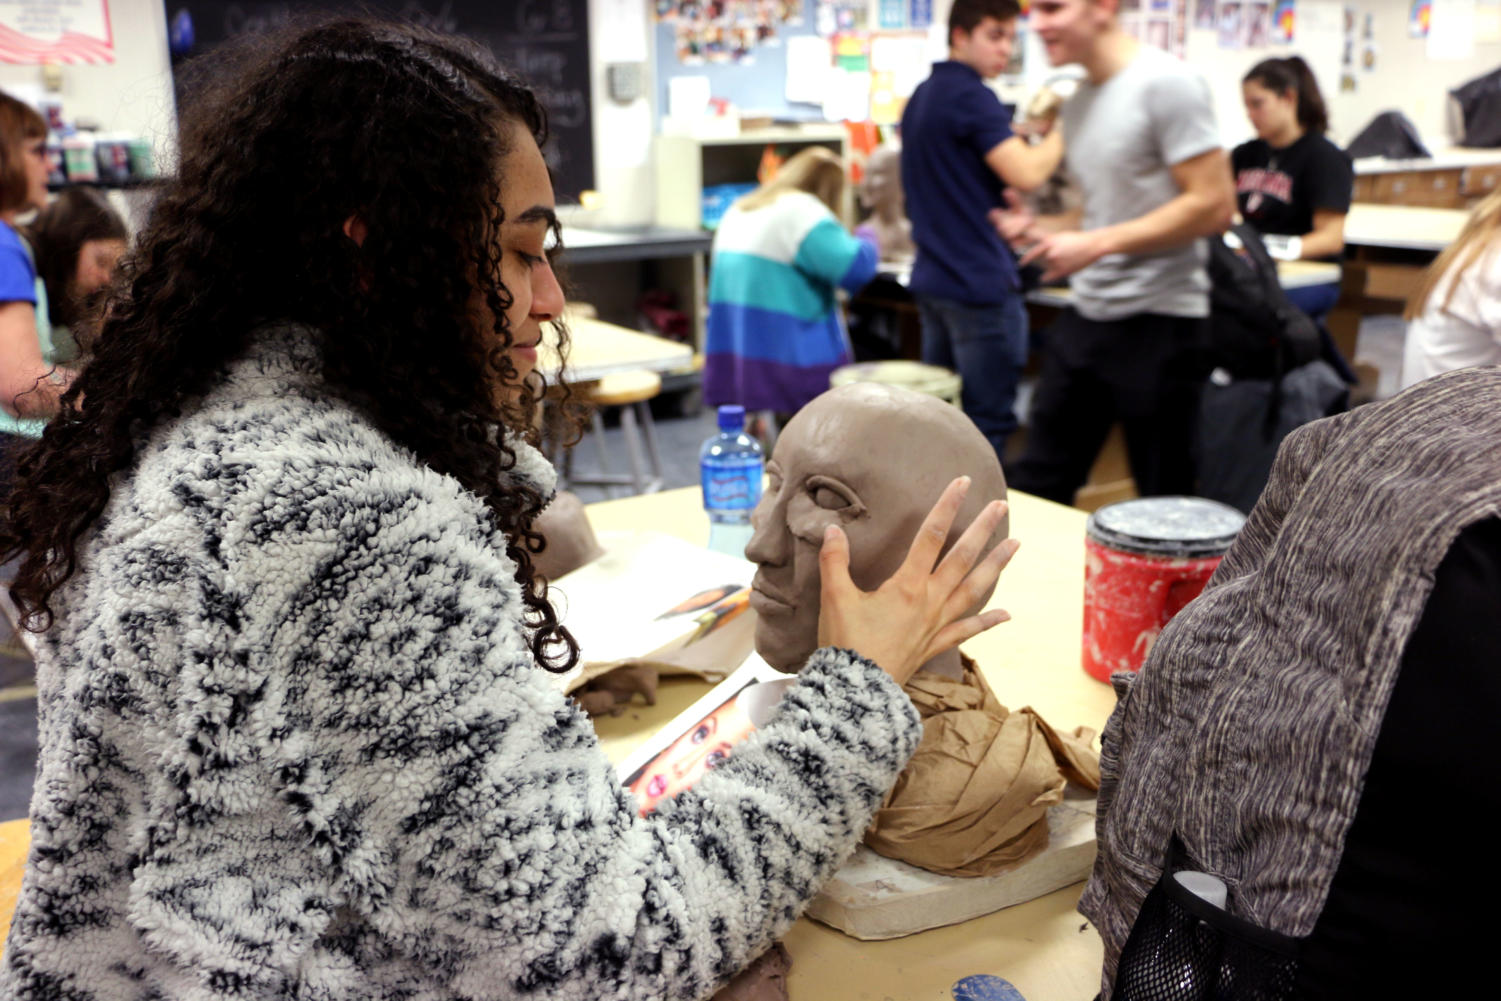 Ceramics+Creates+Celebrities%3A%0ASophomore+Natalie+Hanna+attempts+to+sculpt+the+face+of+the+famous+singer%2C+Rihanna%2C+in+her+ceramics+4+class.+Each+student+in+the+class+chose+a+celebrity+they+admire+for+this+project+to+end+the+third+quarter.